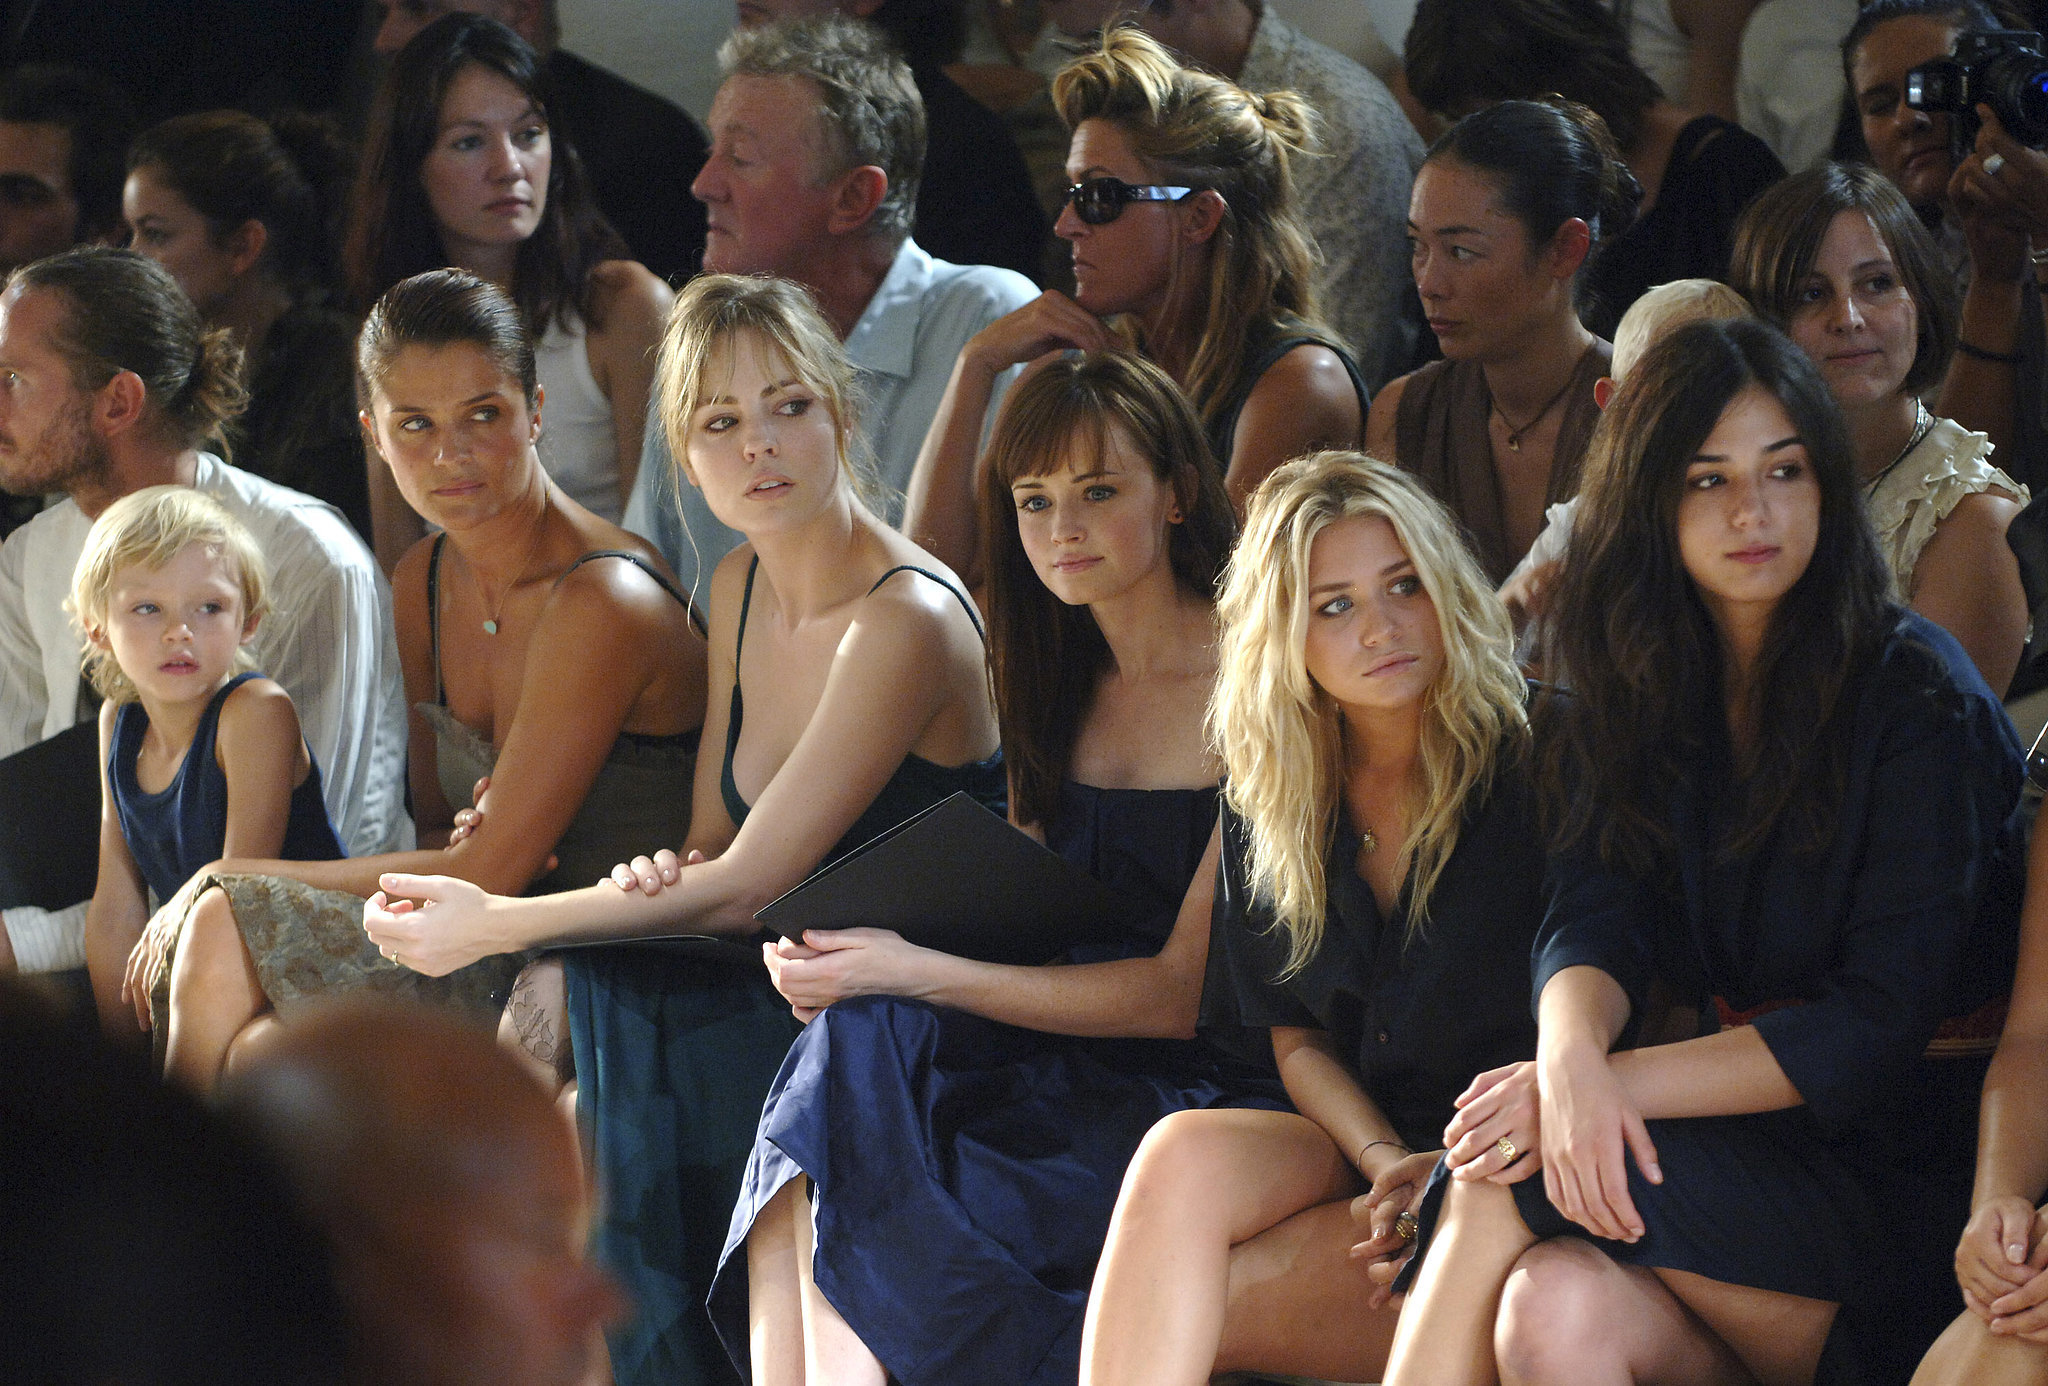 Helena Christensen, Melissa George, Alexis Bledel, and Ashley Olsen checked out Calvin Klein's NYC show in September 2005.